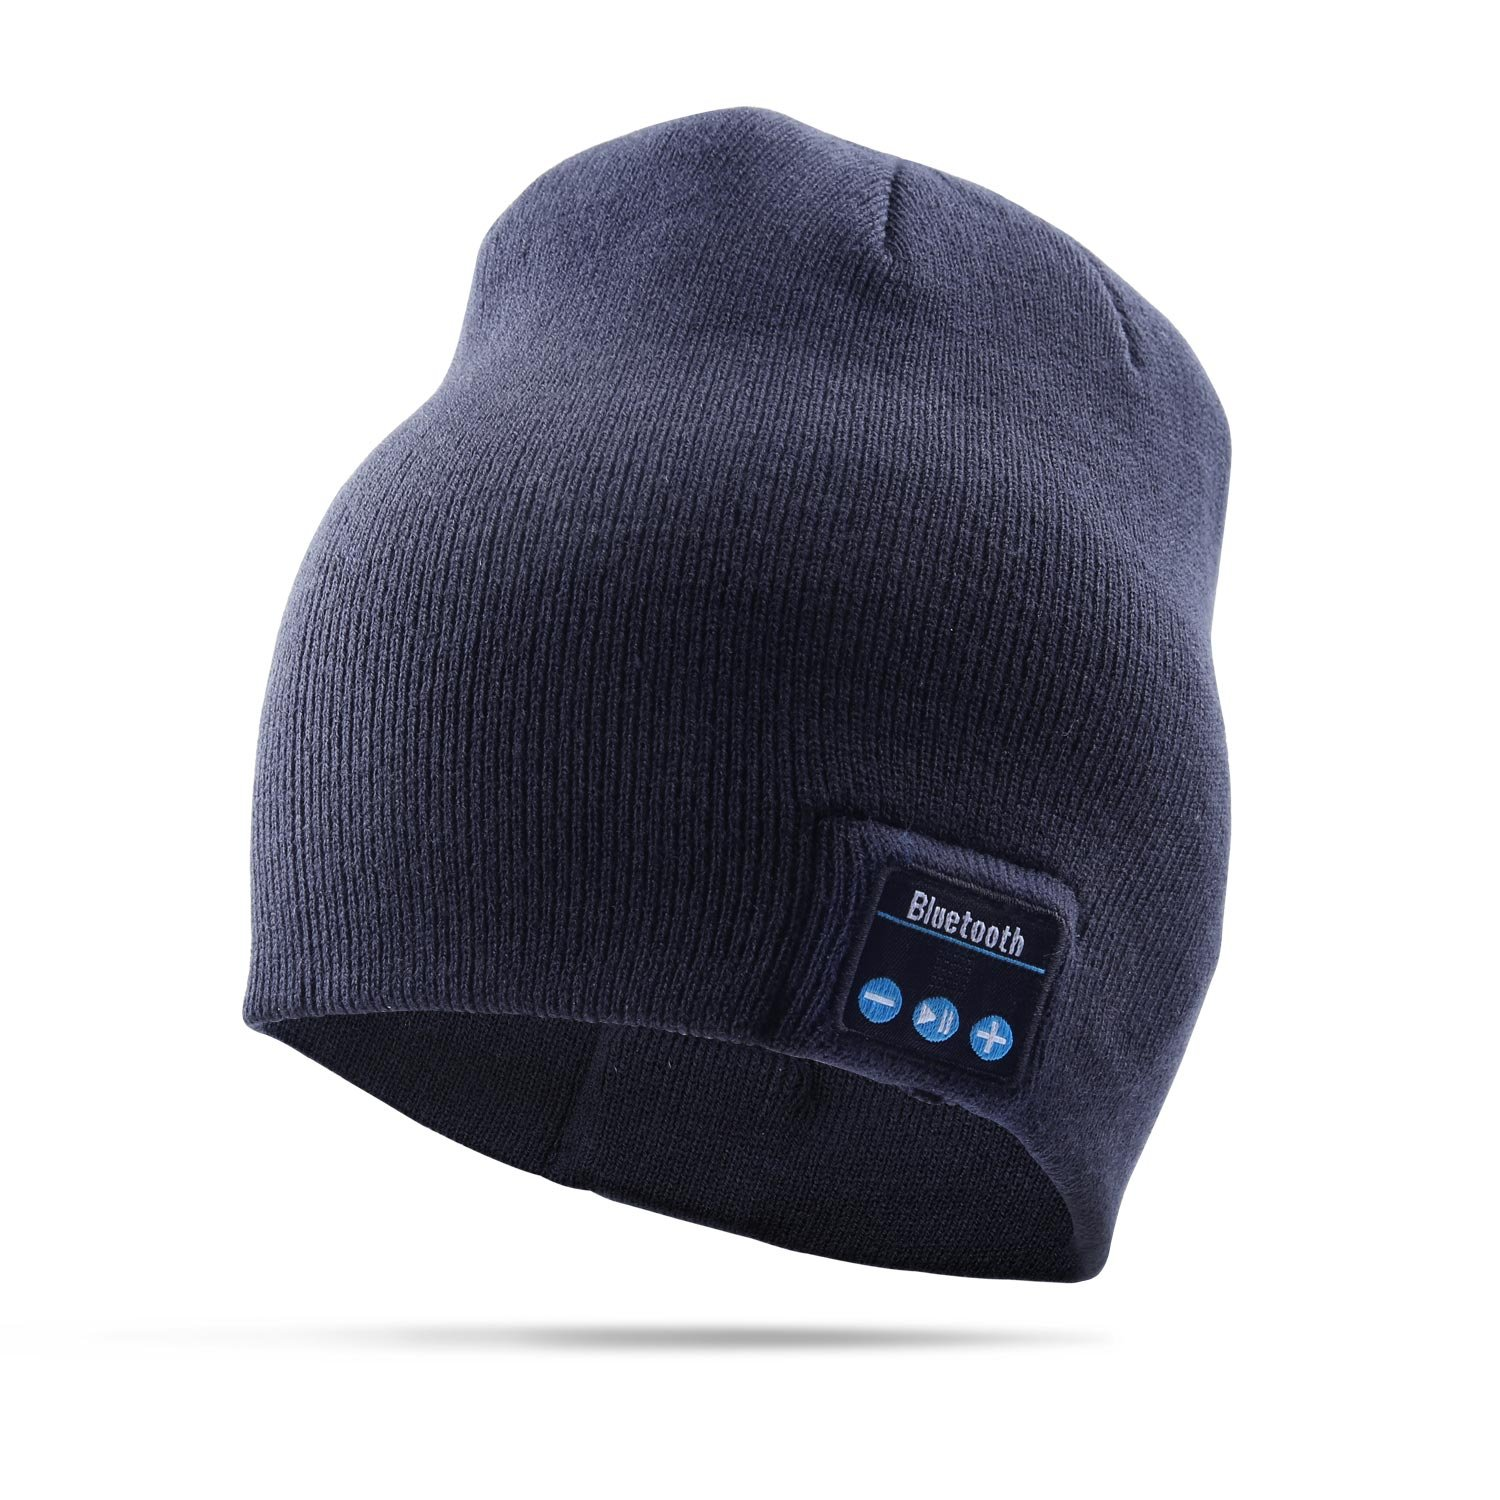 Bluetooth Hat Wireless Smart Headset Musical Knit Cap for Fitness Outdoor Sports Skiing Running Skating Walking (Blue) Warlxun